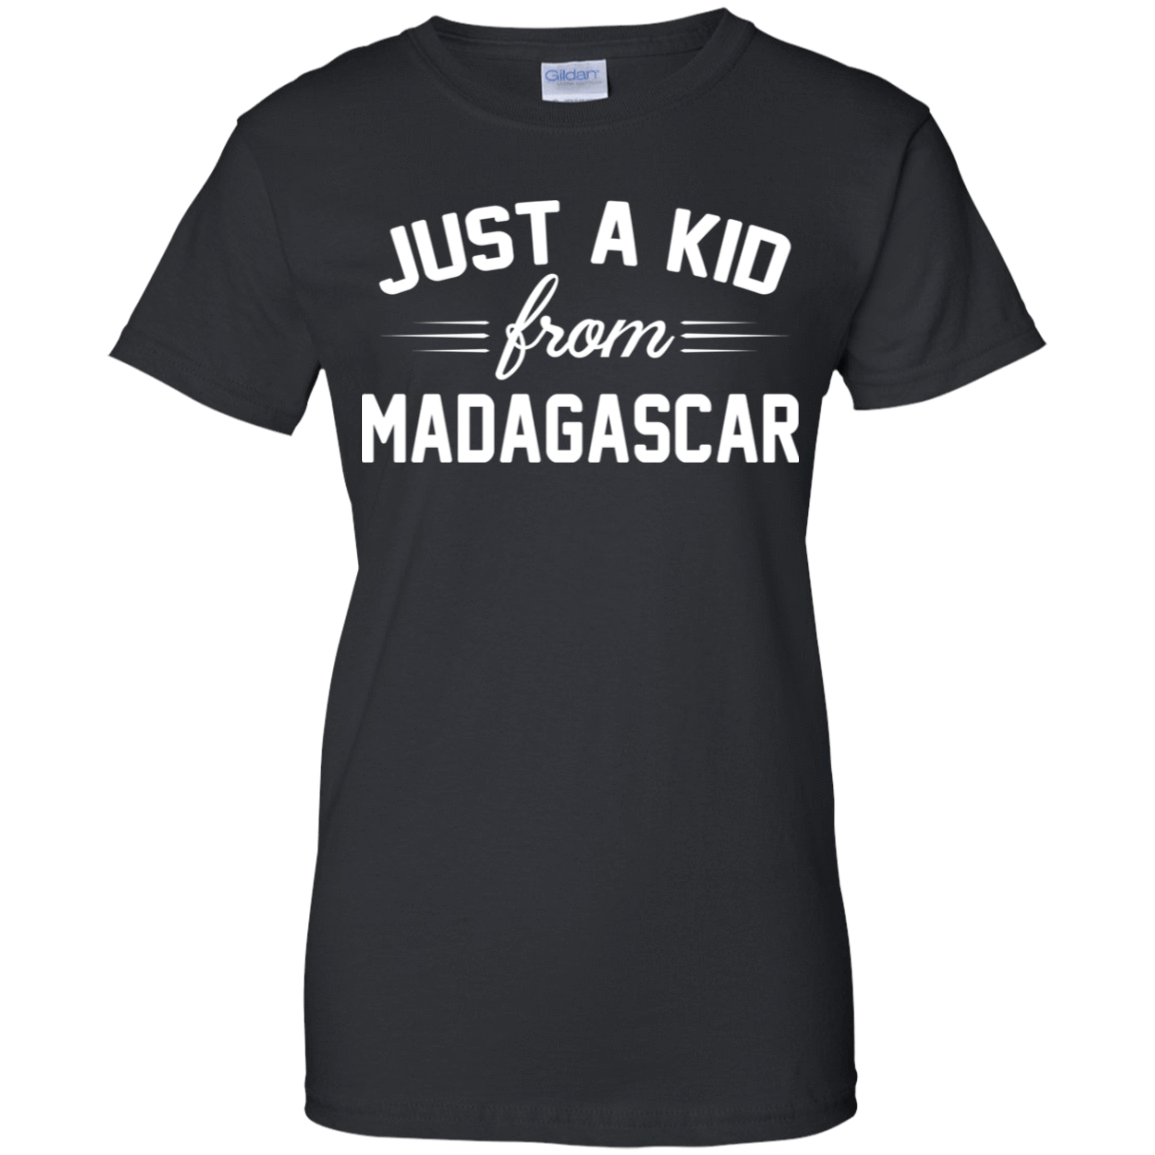 Just a Kid Store | Madagascar T-Shirts, Hoodie, Tank 939-9248-72091601-44695 - Tee Ript